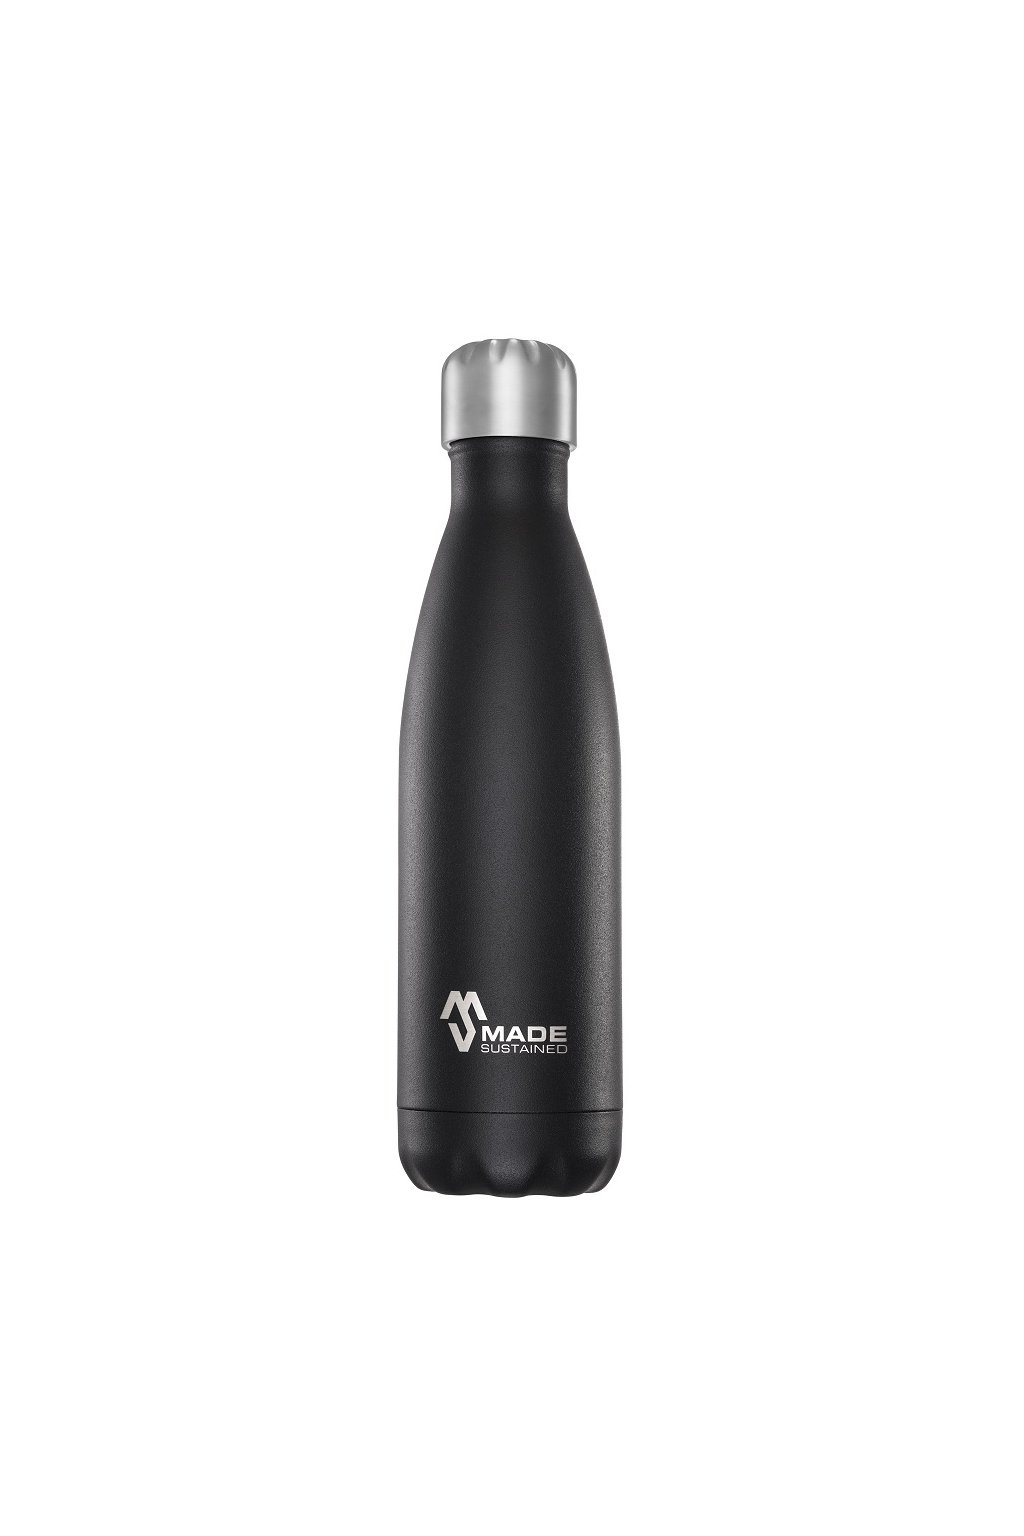 Termoflasa Made Sustained 500ml black tie